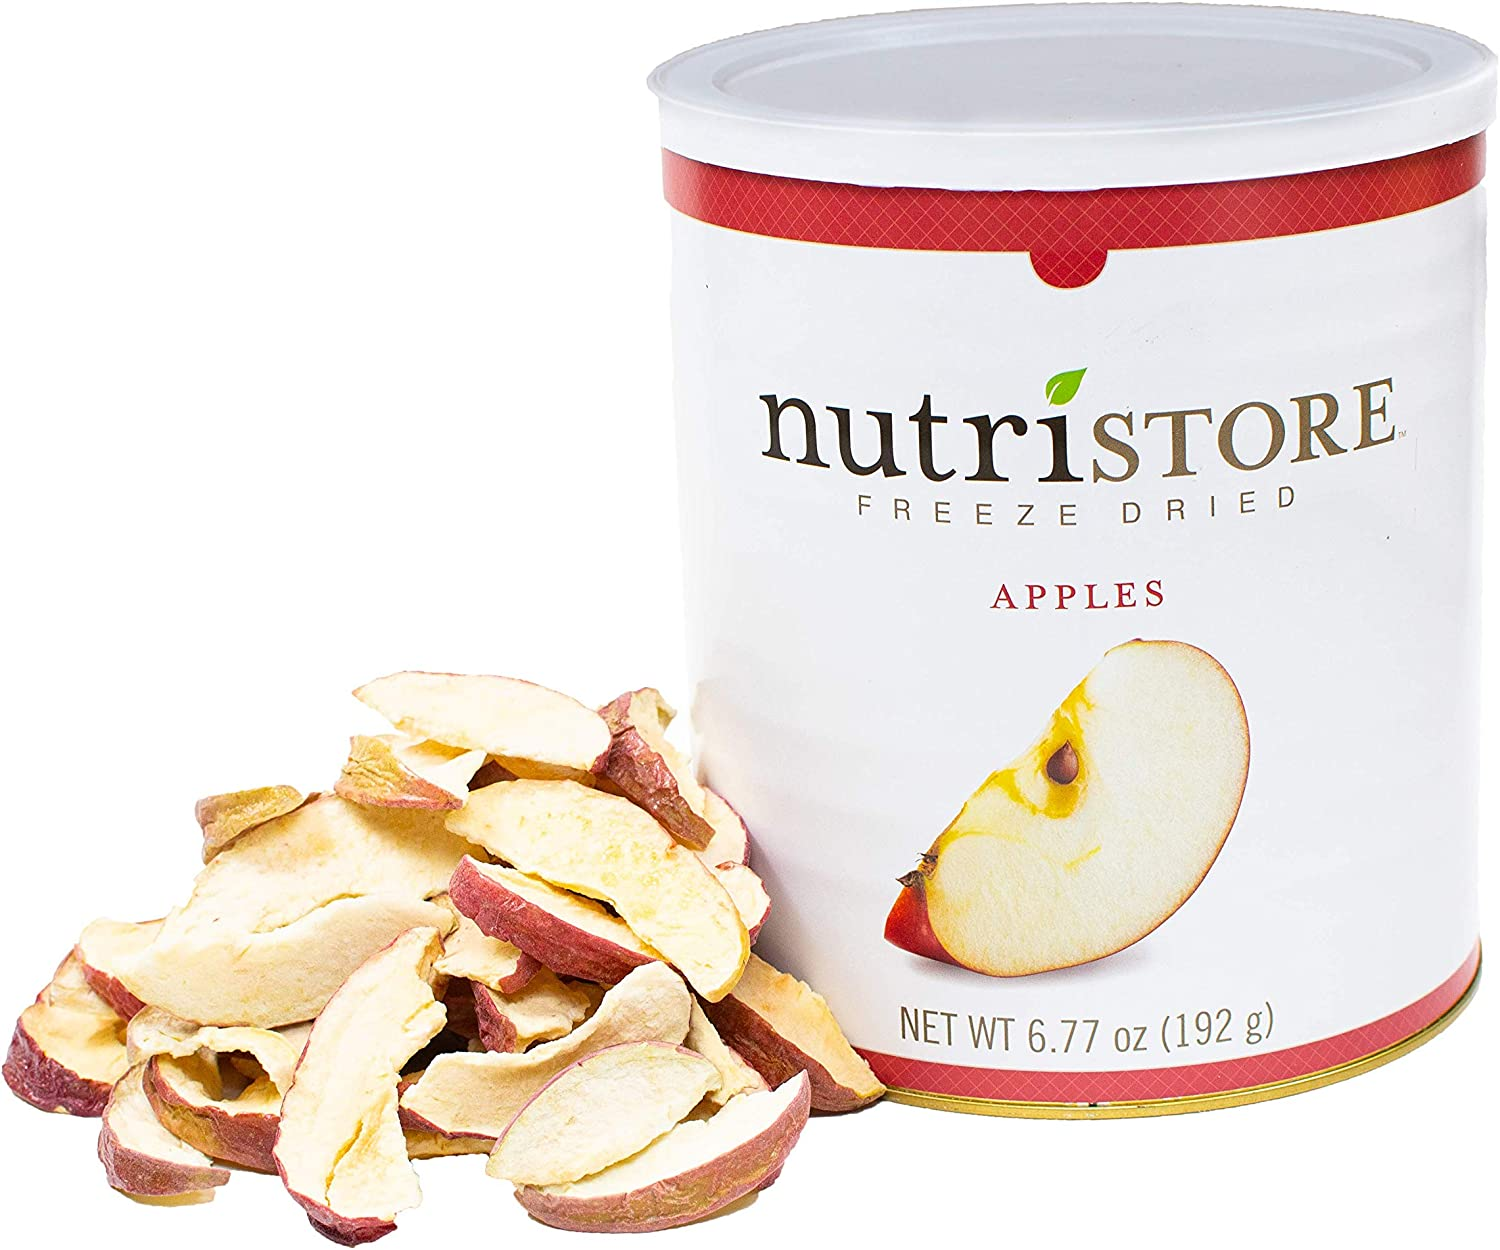 Nutristore Freeze Dried Fuji Apples | 45 Servings | 6.77 oz | 25 Year Shelf Life | Amazing Taste | Healthy Snack On-The-Go | Emergency and Survival Food Supply